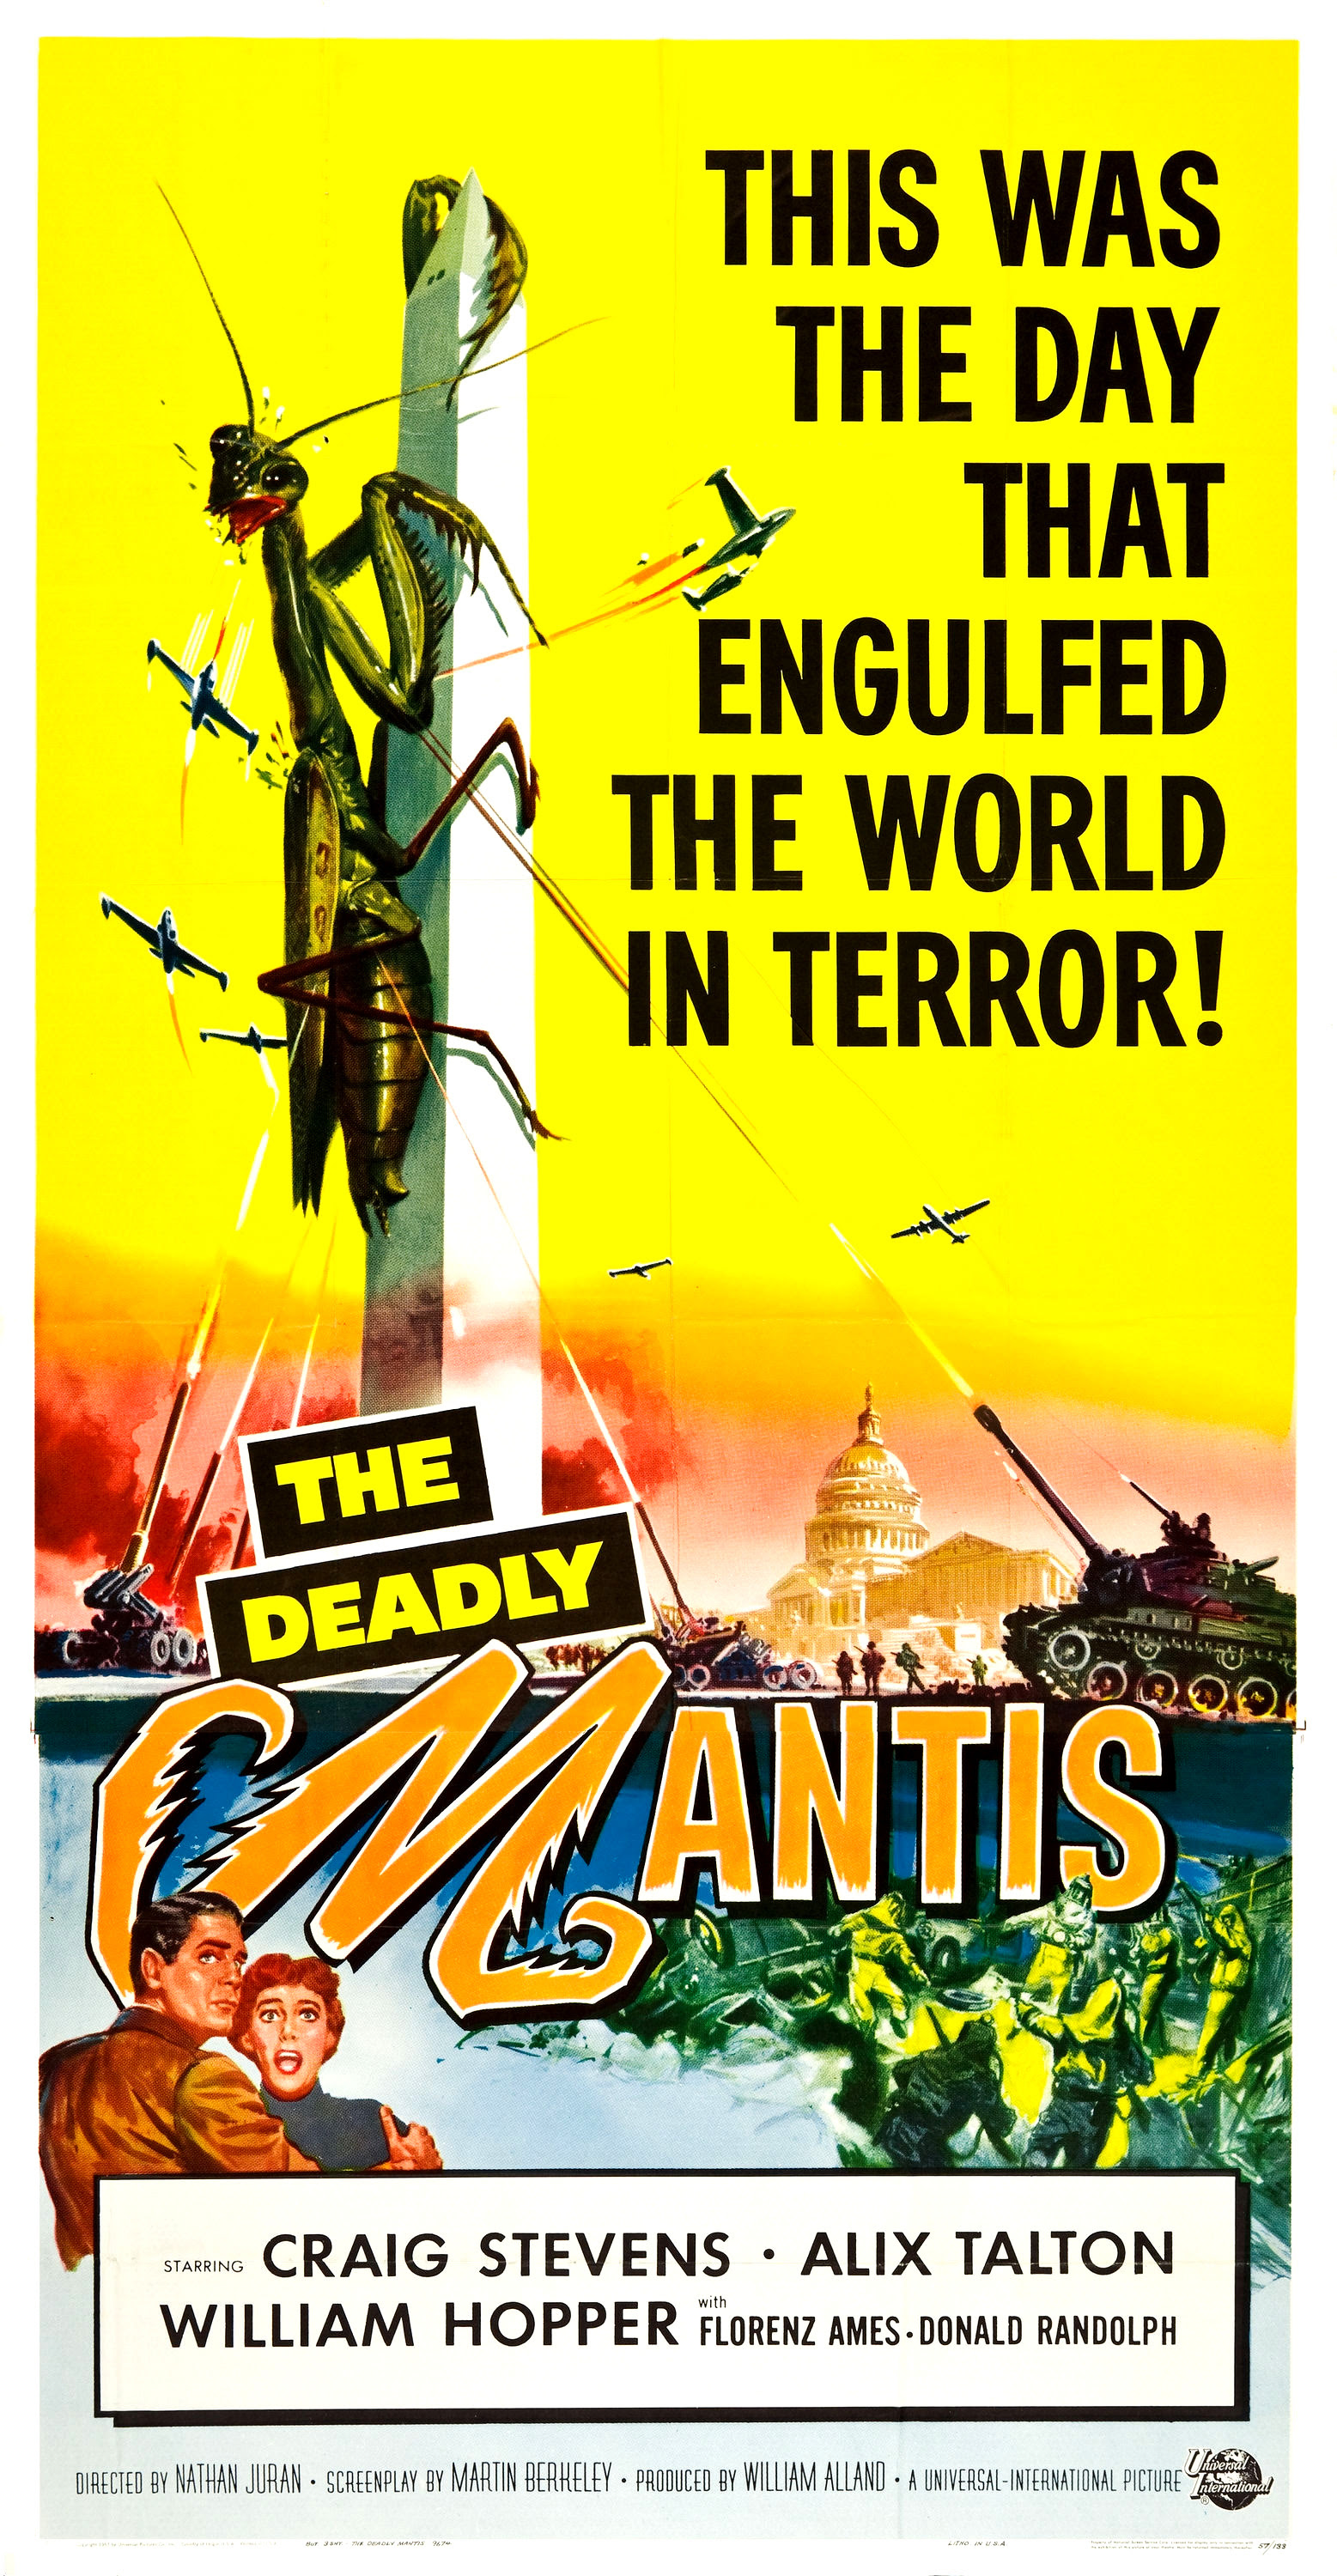 Reynold Brown - The Deadly Mantis (Universal International, 1957)